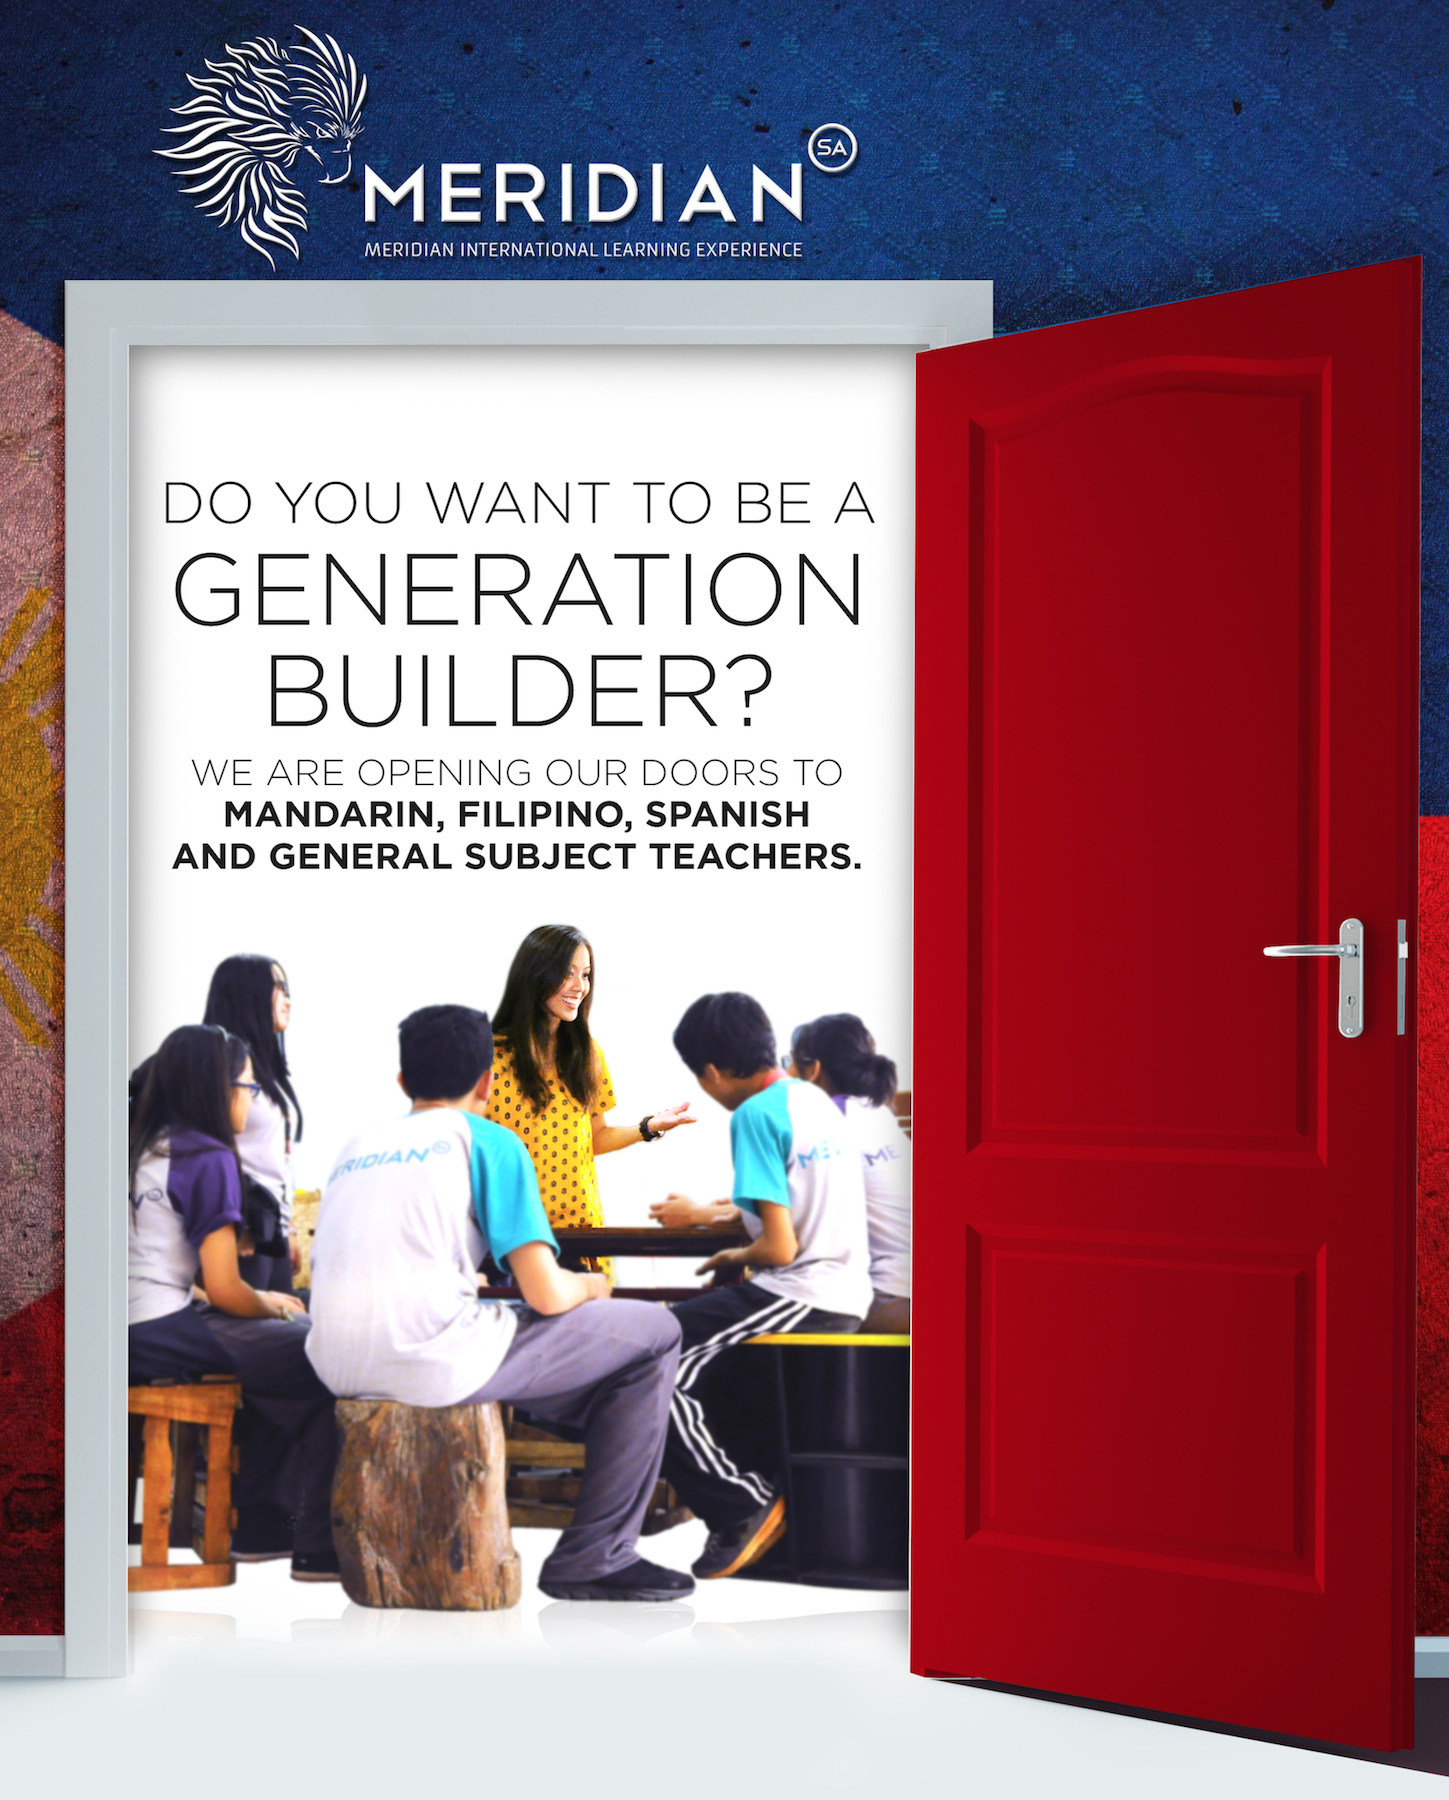 Do you want to be a GENERATION BUILDER